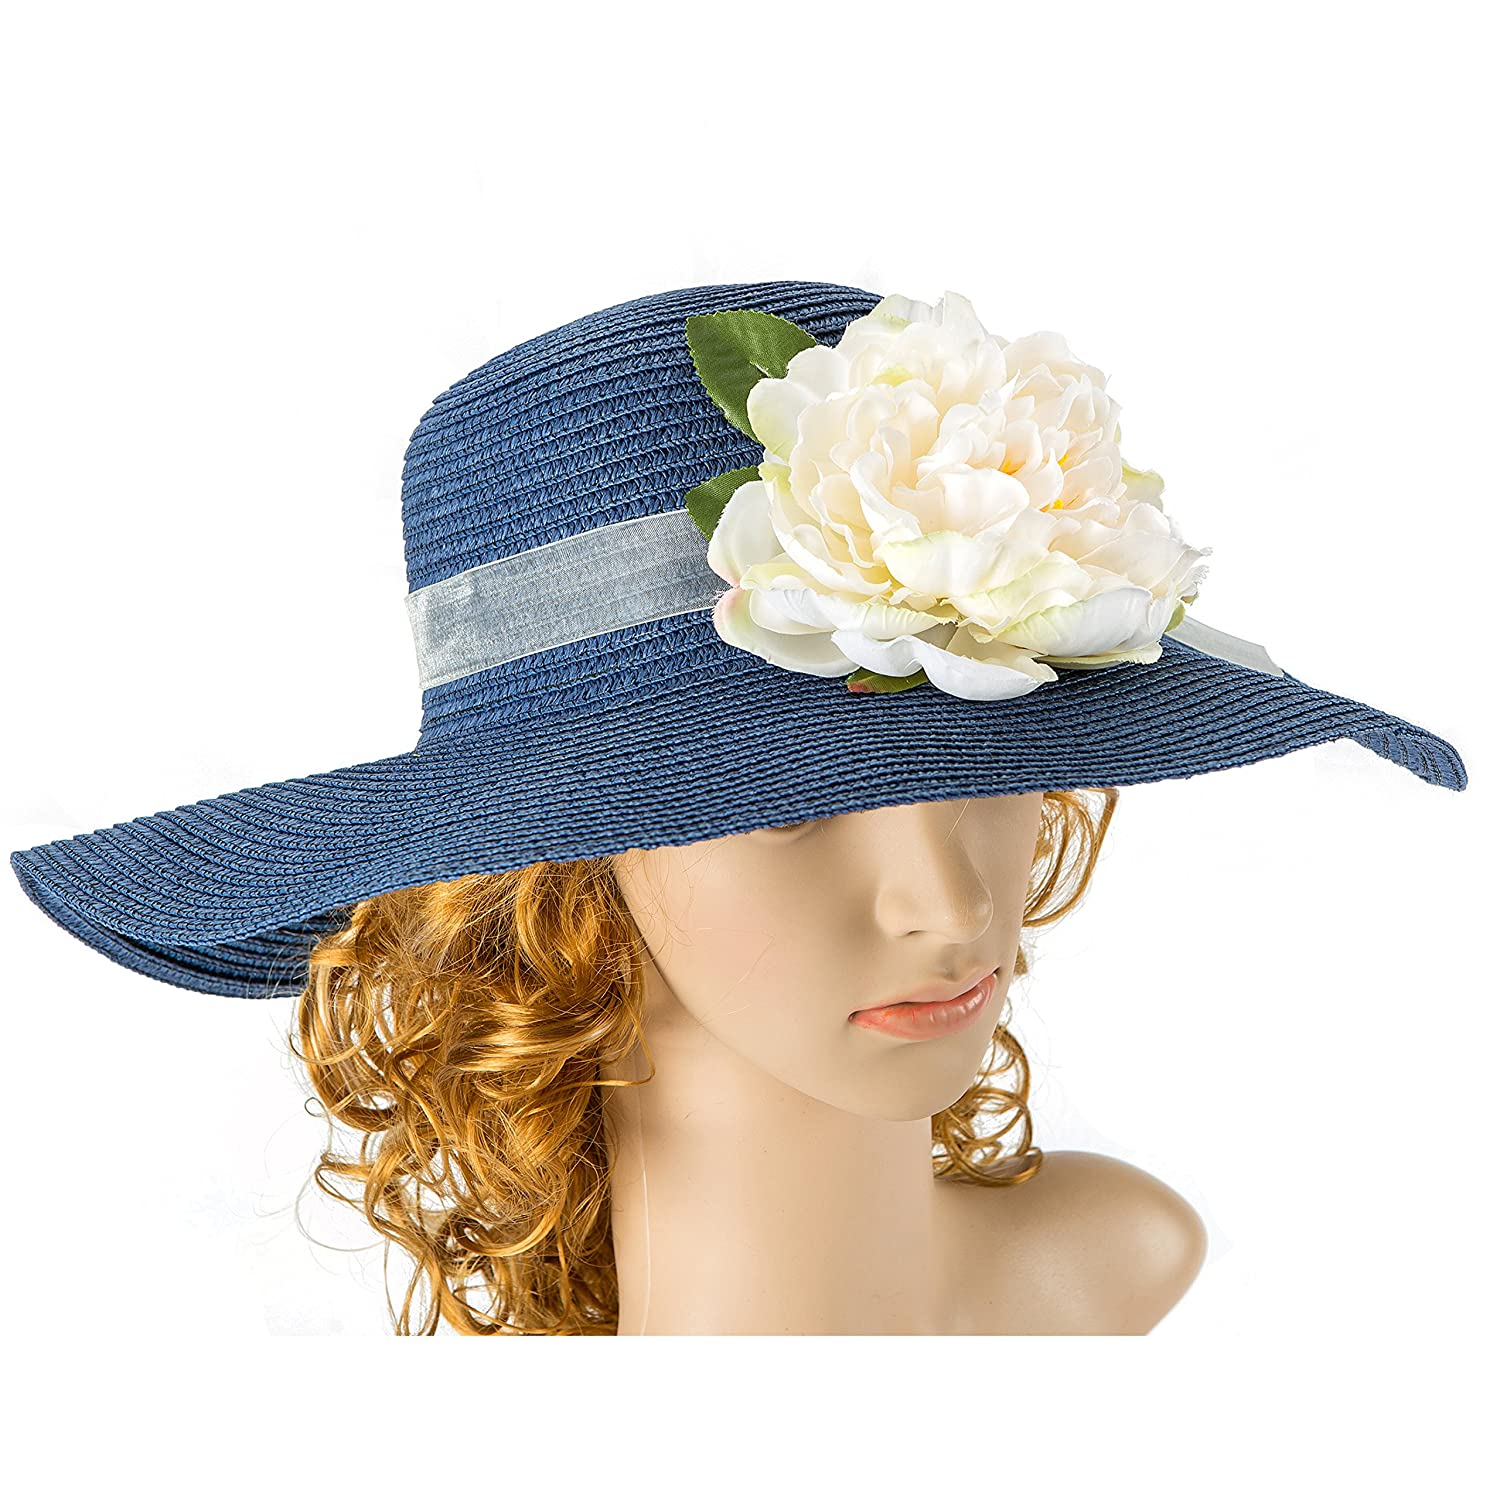 Tropic Beauty - Floppy Hat with Big white Peony Flower Jean Blue Bow Kentucky Derby Race Church Wedding Beach Garden Party